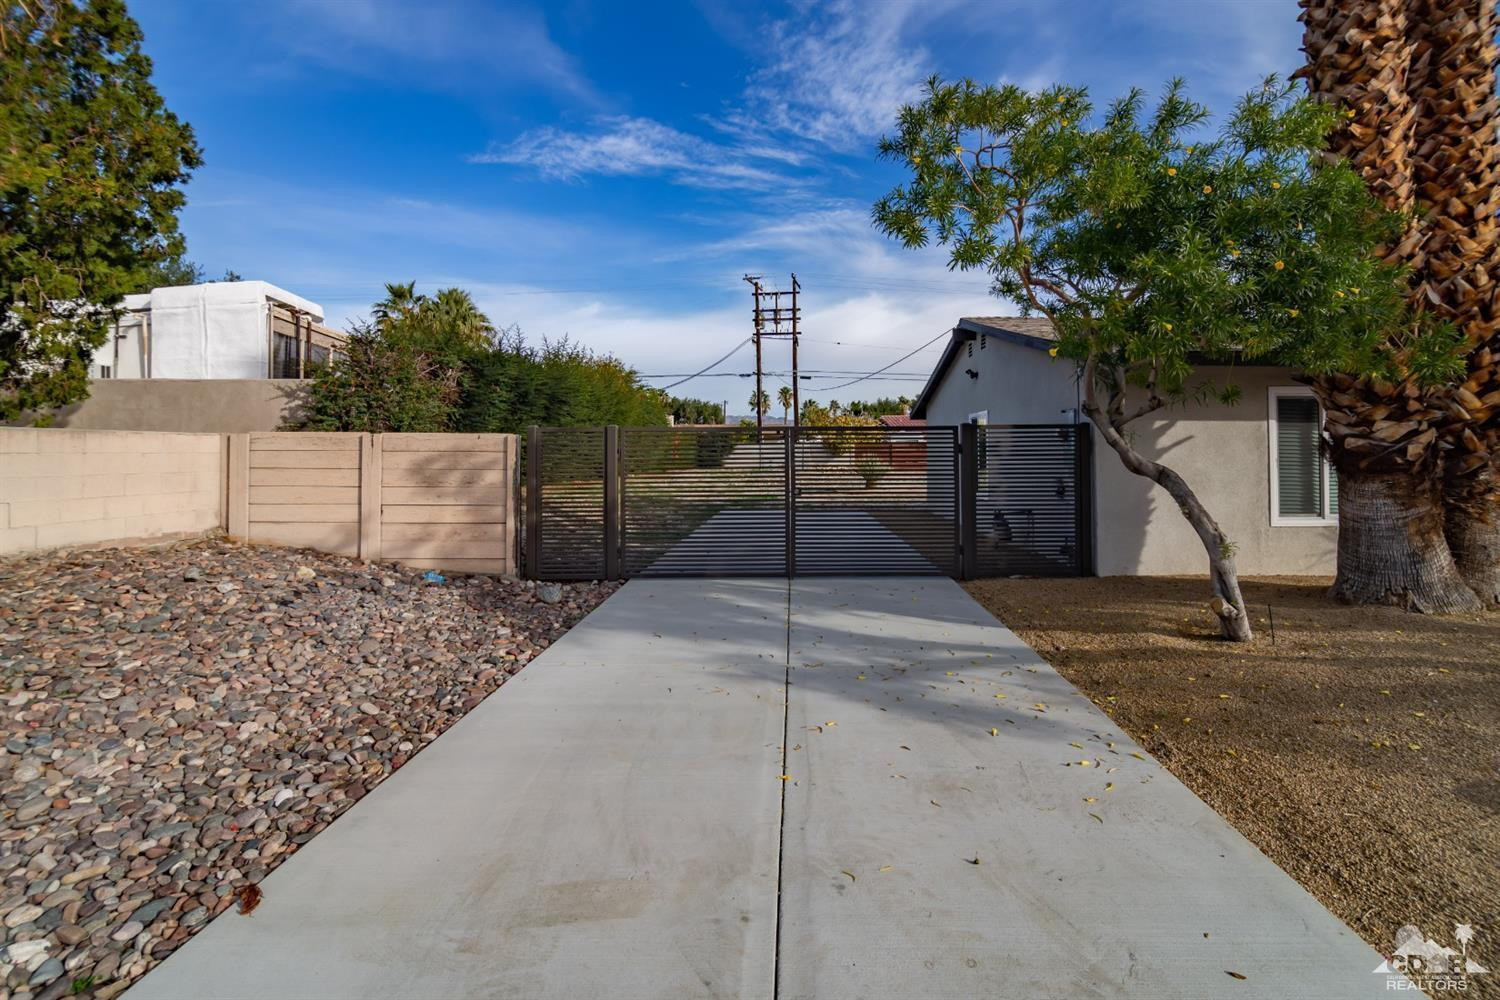 2390 E Racquet Club Road, Palm Springs, California 92262, 3 Bedrooms Bedrooms, ,2 BathroomsBathrooms,Residential,Sold,2390 E Racquet Club Road,219015377